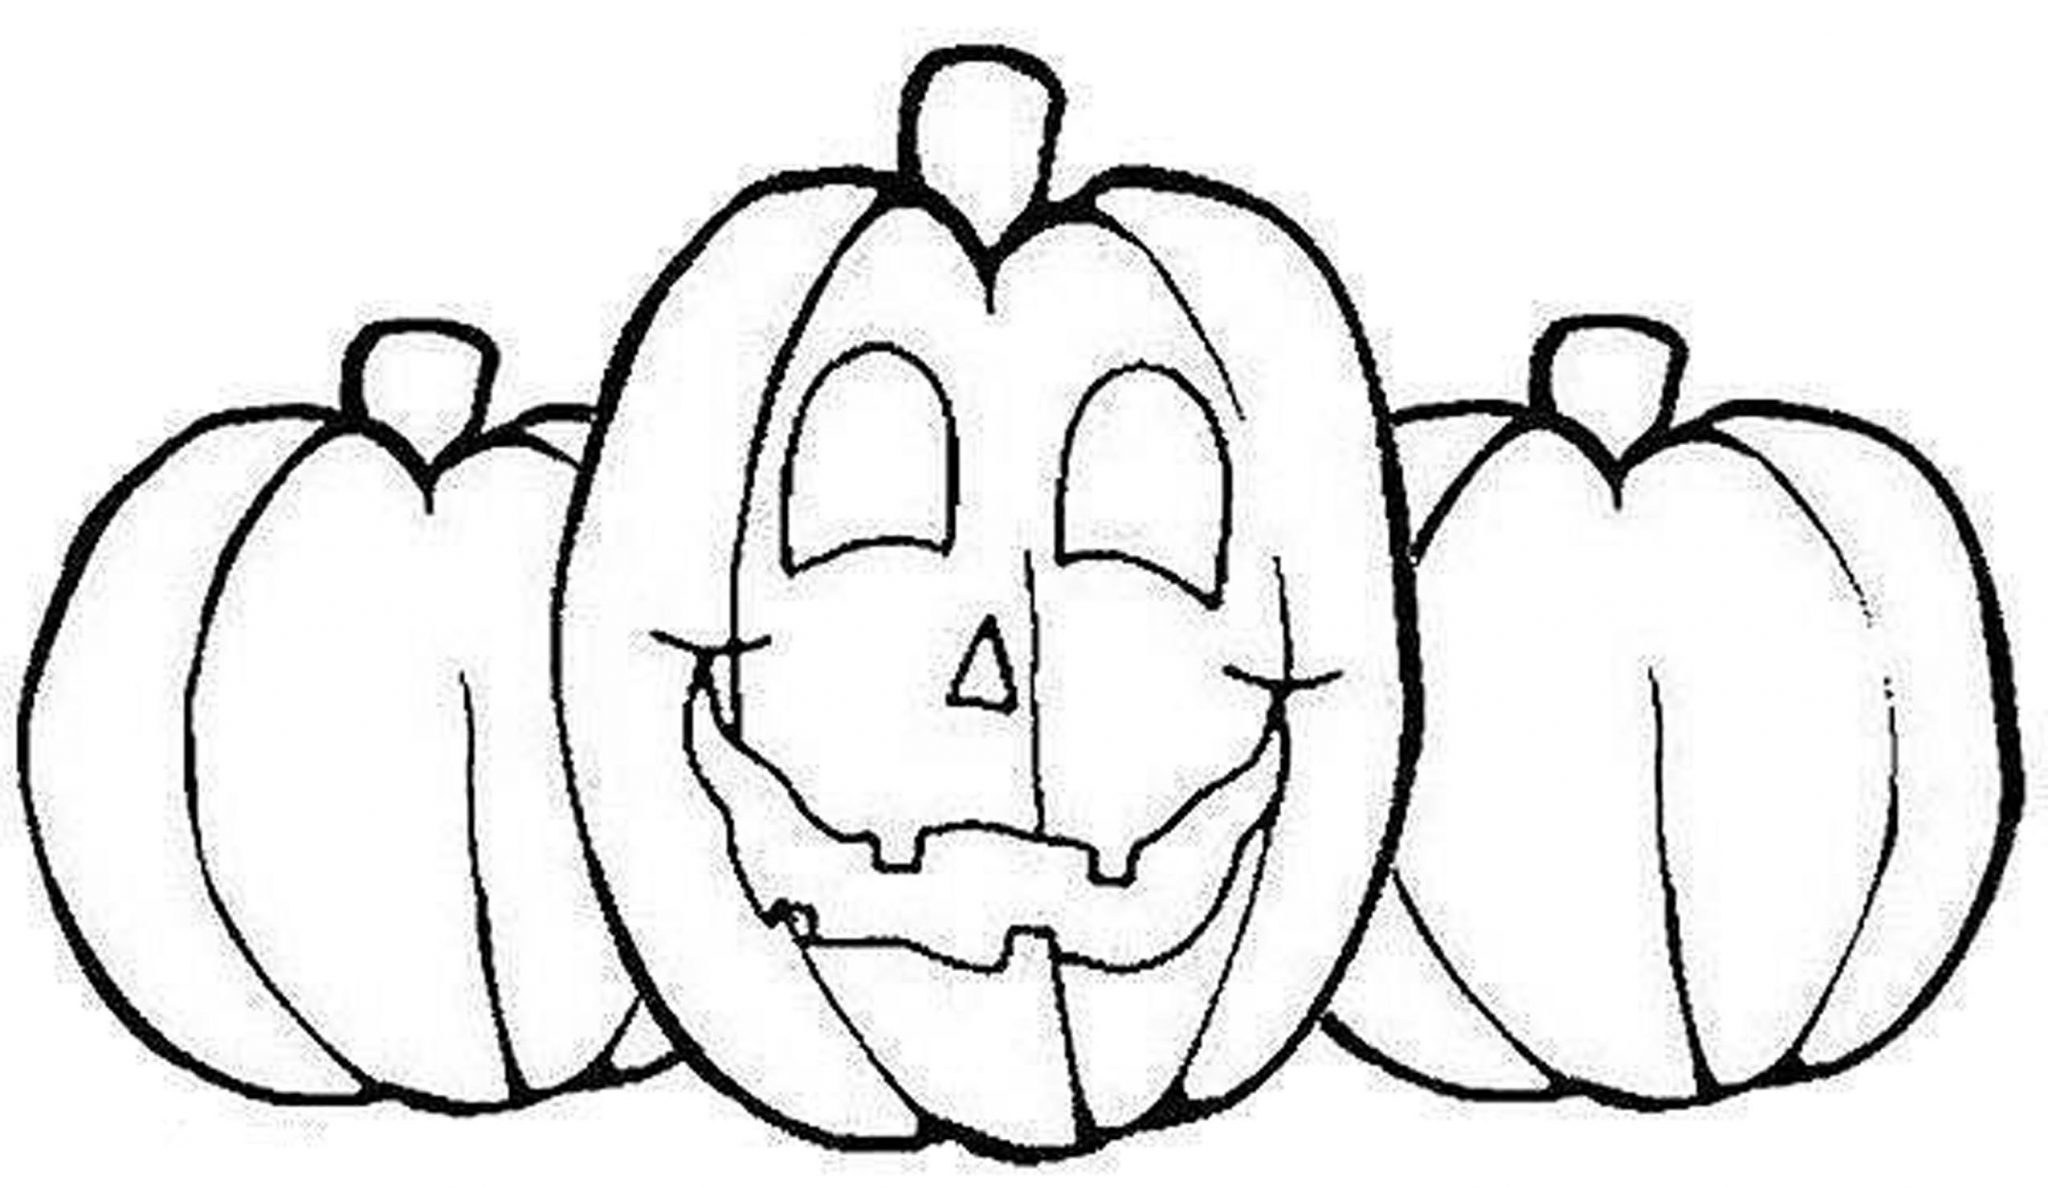 pumpkin coloring book pumpkins coloring pages to celebrate thanksgiving learn coloring pumpkin book